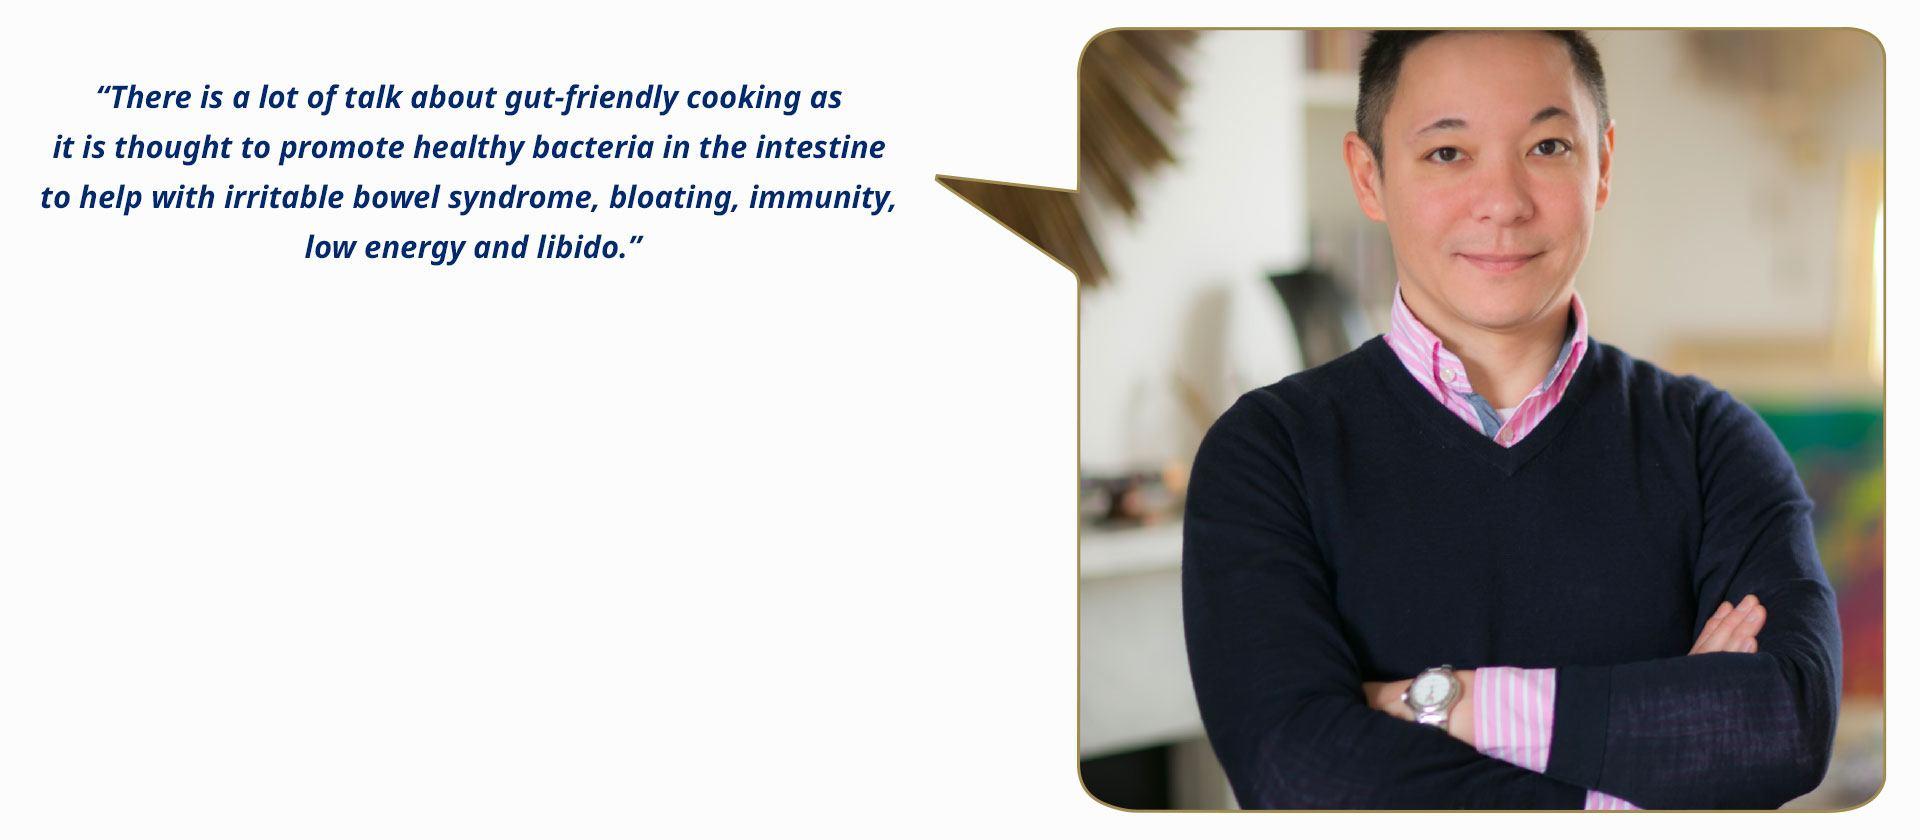 Luiz Hara (UK), chef, food & travel writer, founder of the London Foodie.